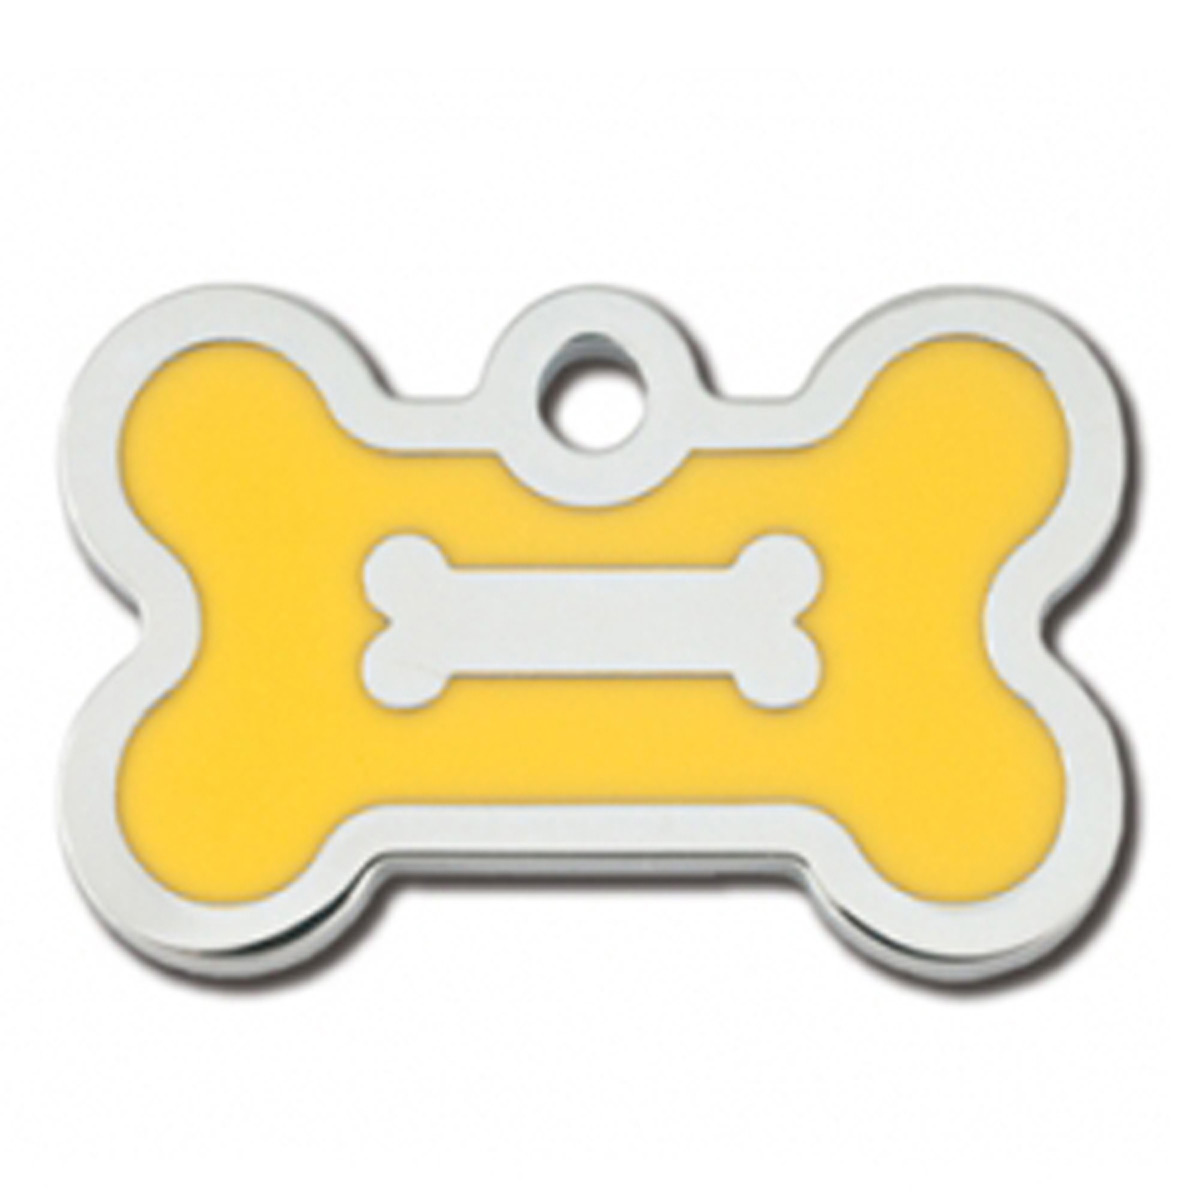 Bone Small Engravable Pet I.D. Tag - Chrome and Yellow